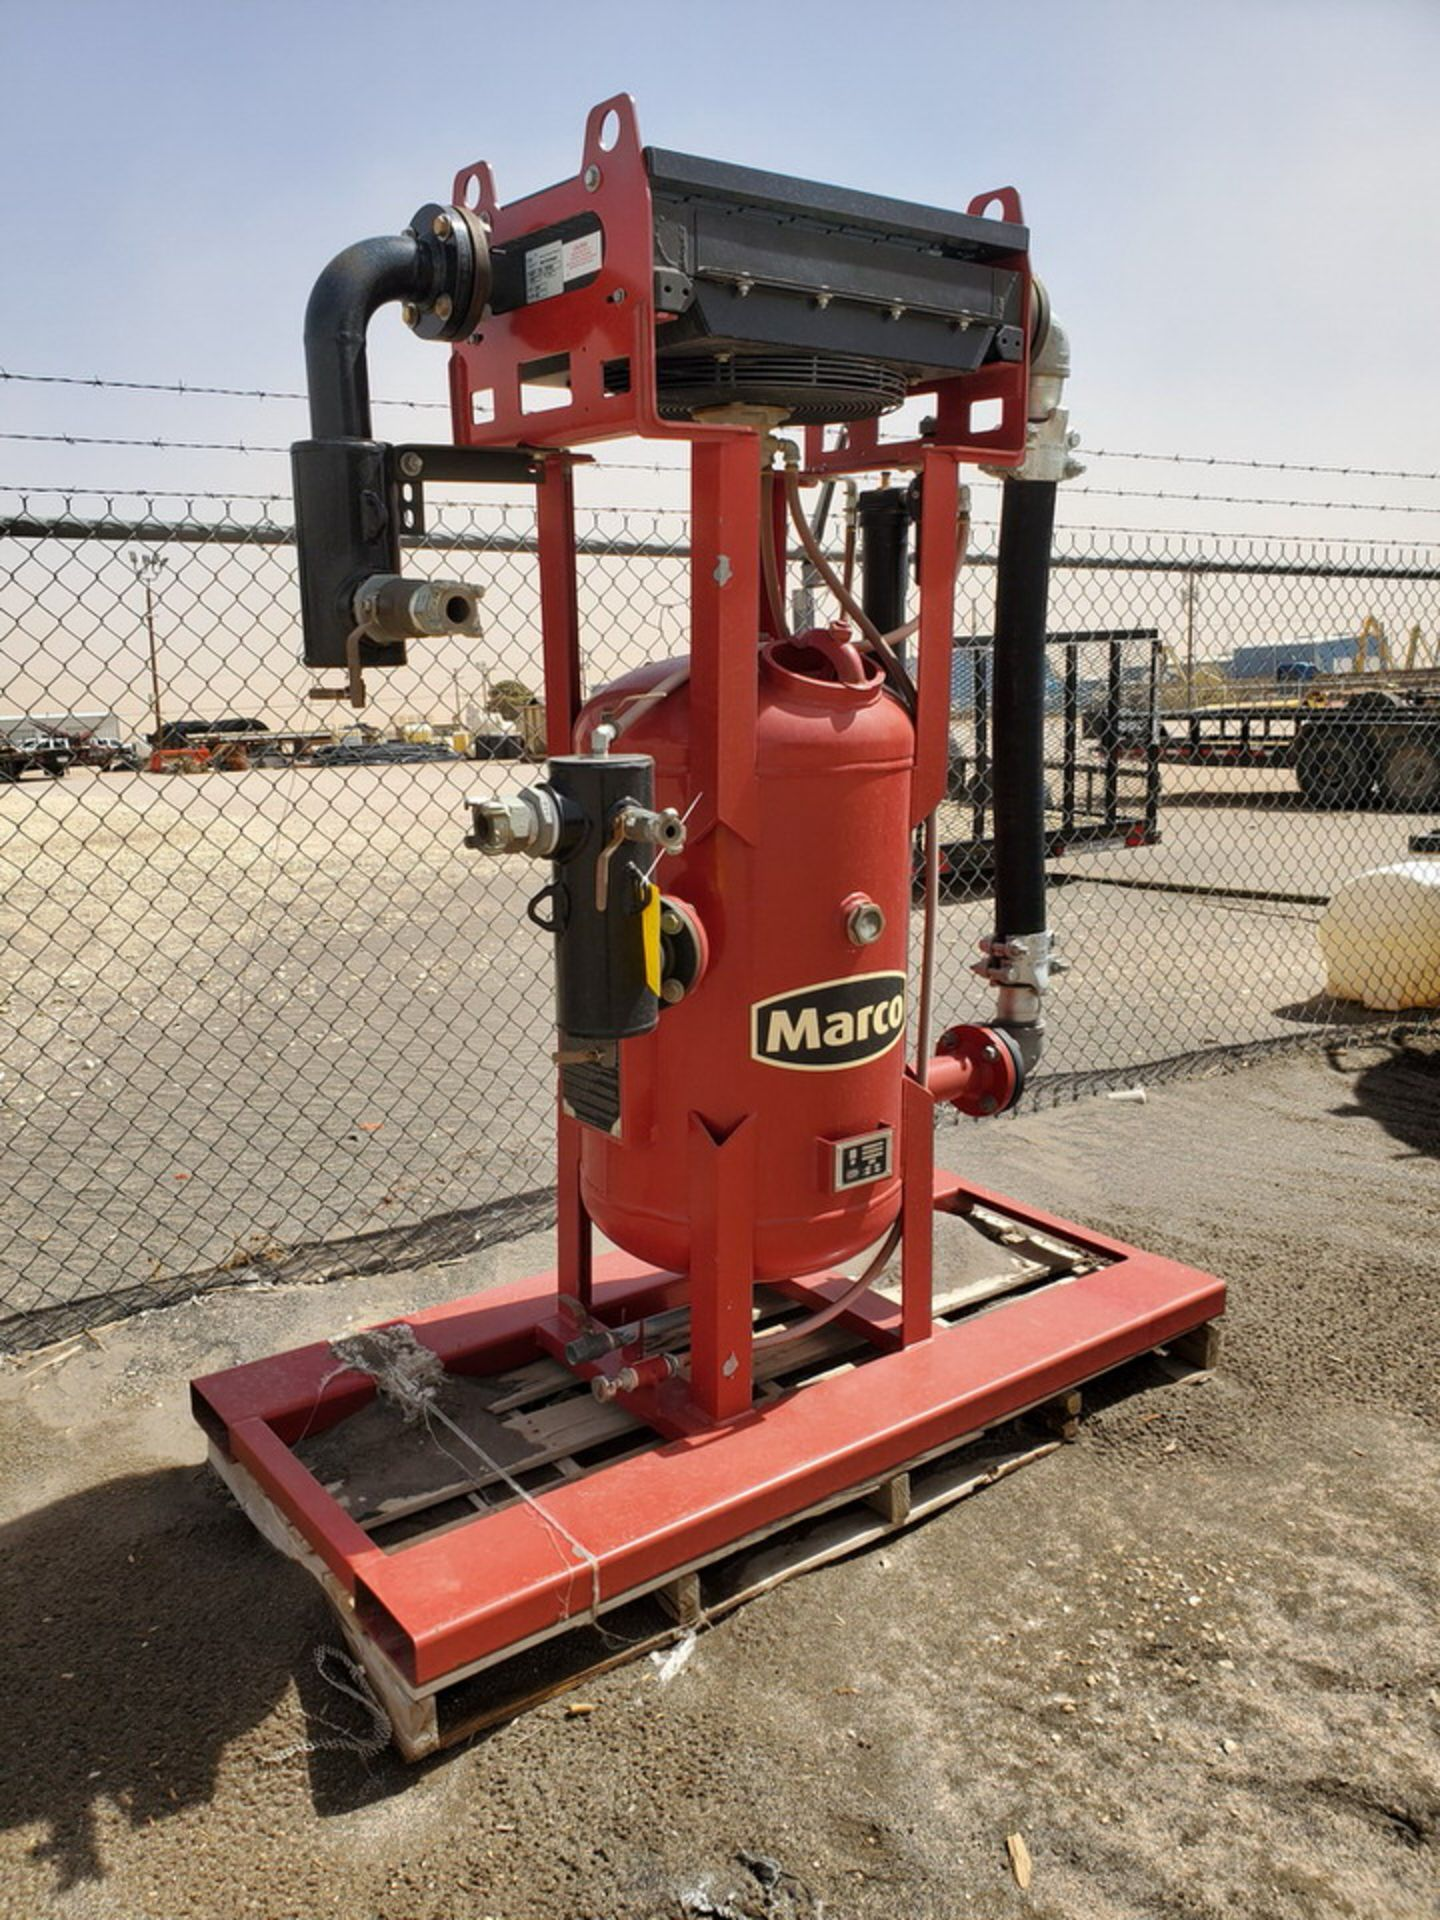 """2017 Marco Air Dryer 150psi@250F, -20@150psi, Vessel Dims: 30"""" Seam To Seam; Overall Dims: 72"""" x 35"""" - Image 2 of 11"""